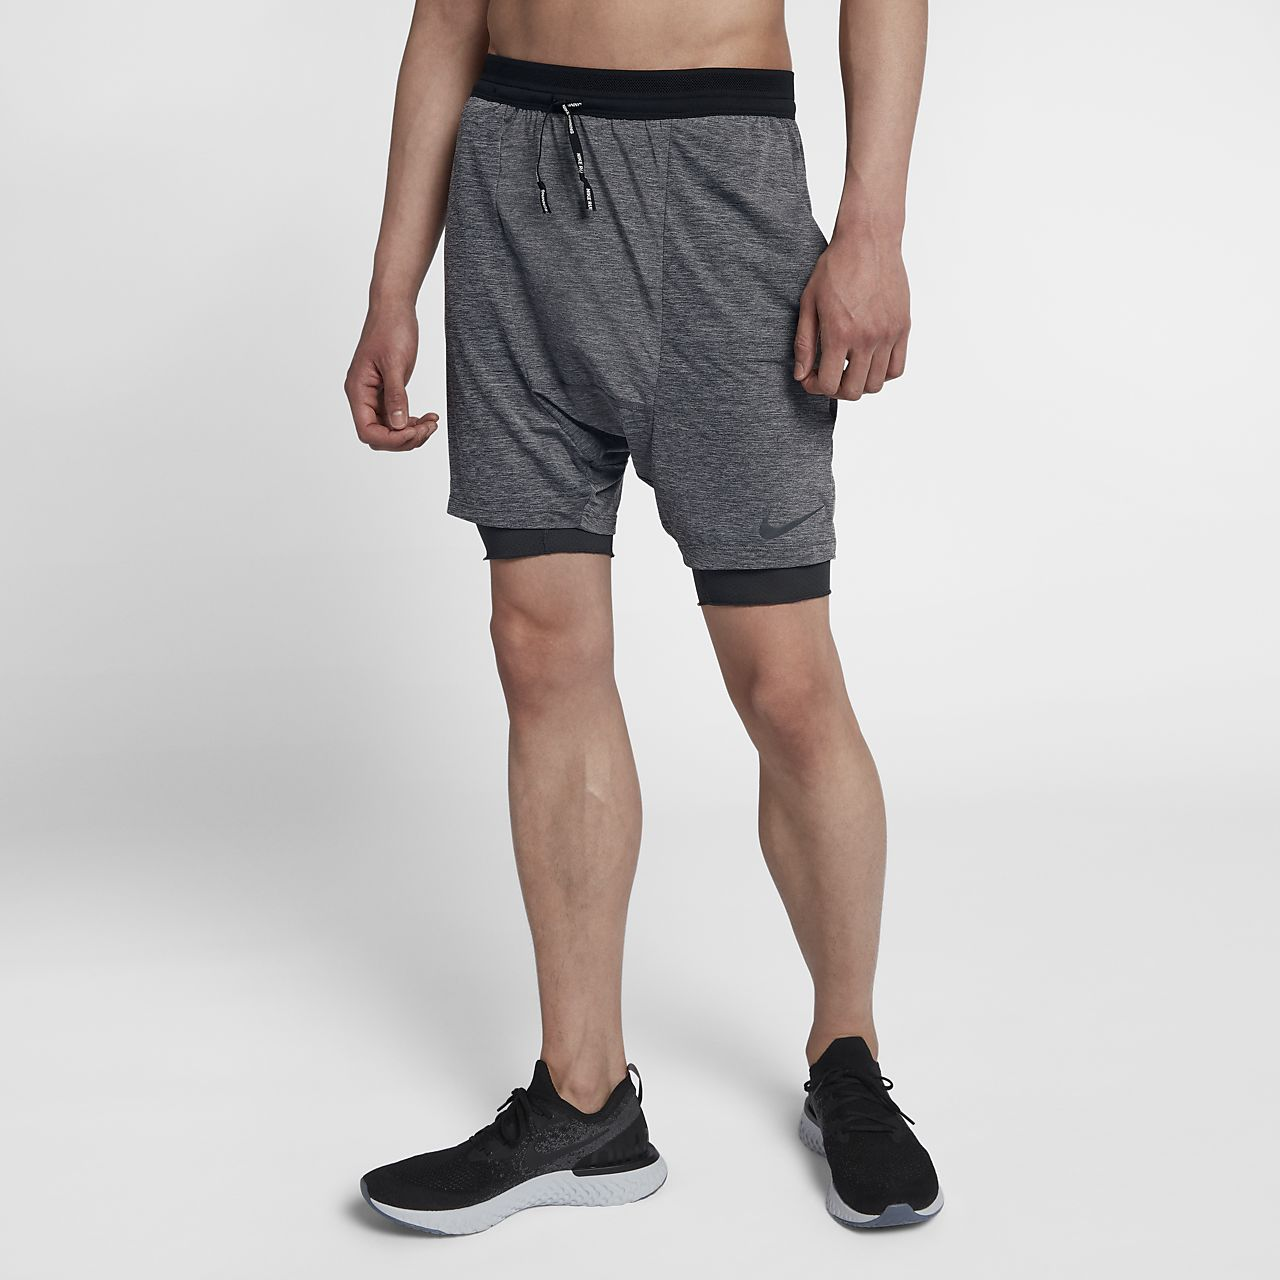 "Nike Run Division Flex Stride 2-in-1 Men's 7"" (18cm approx.) Running Shorts"